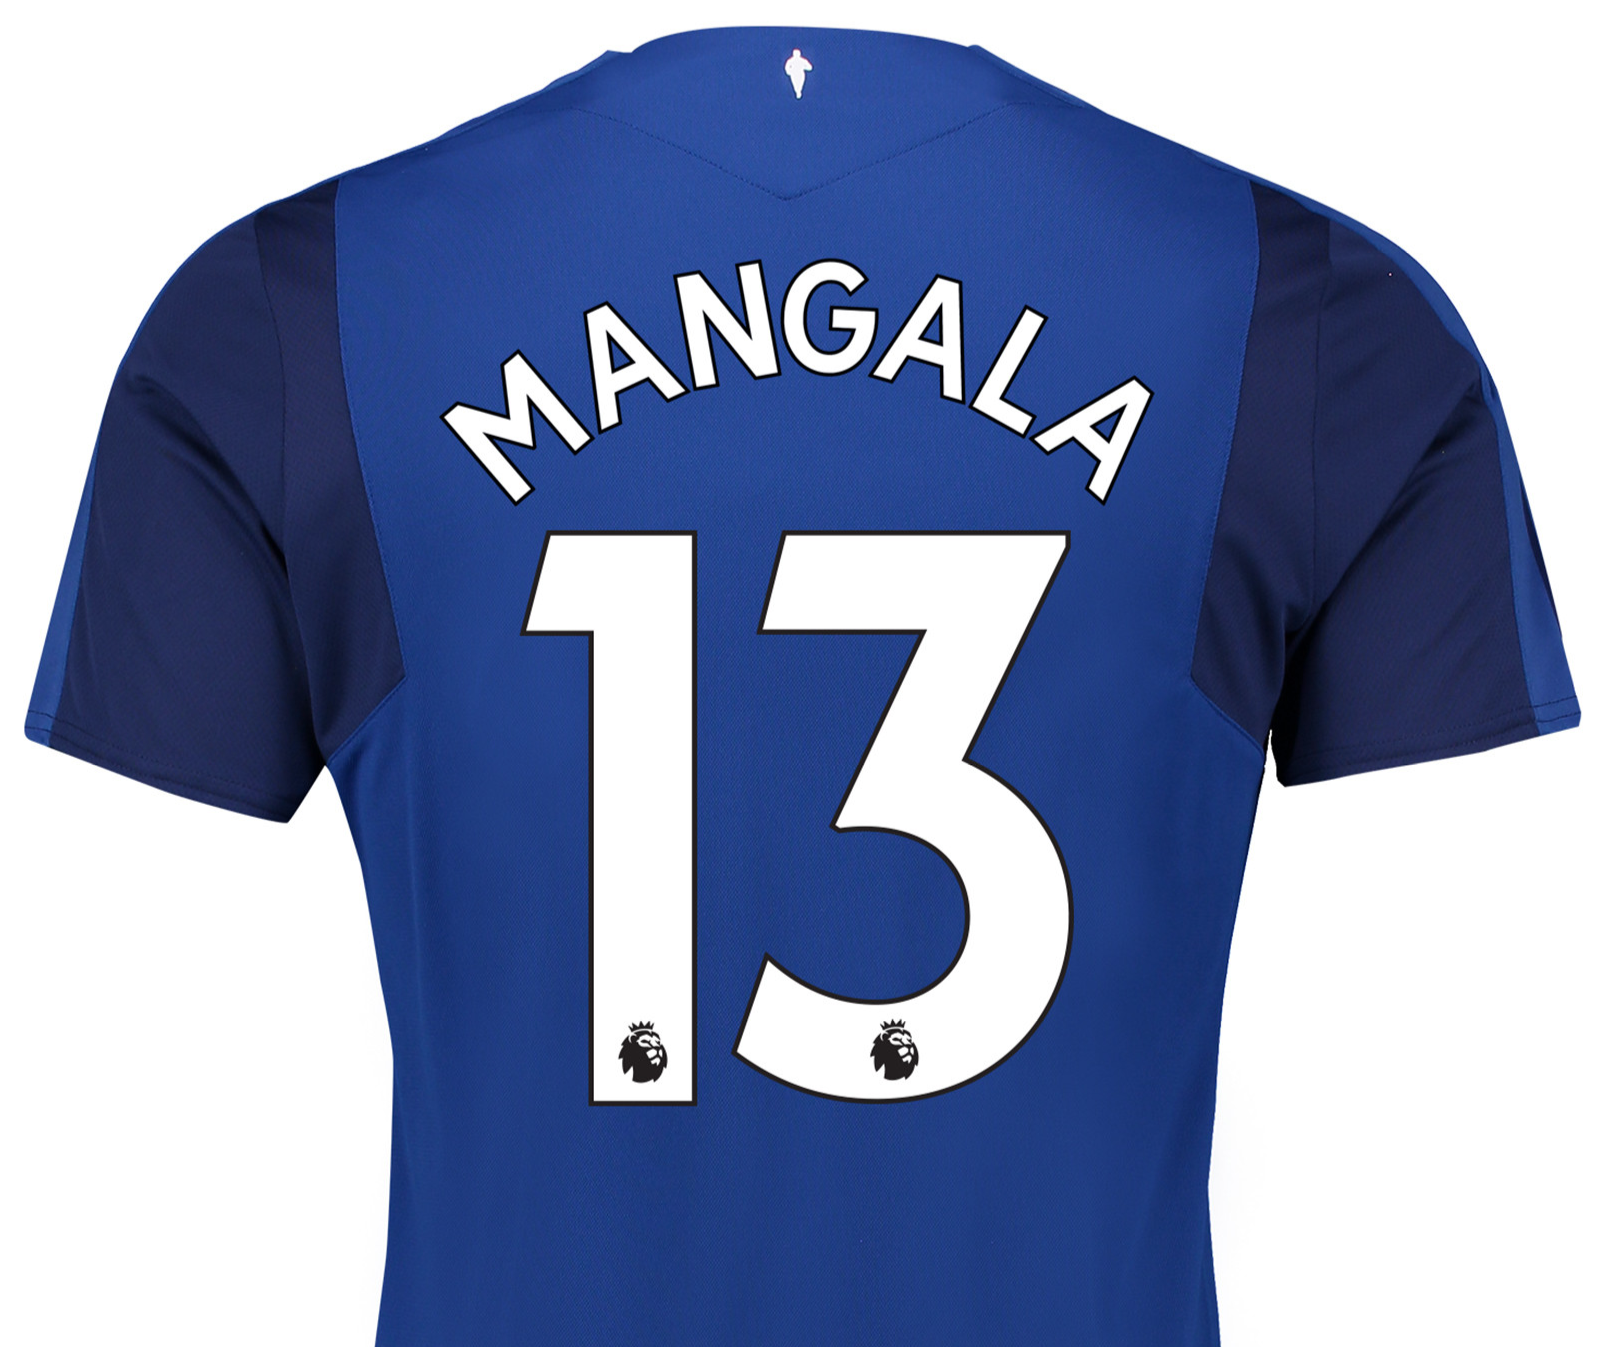 Eliaquim Mangala on loan